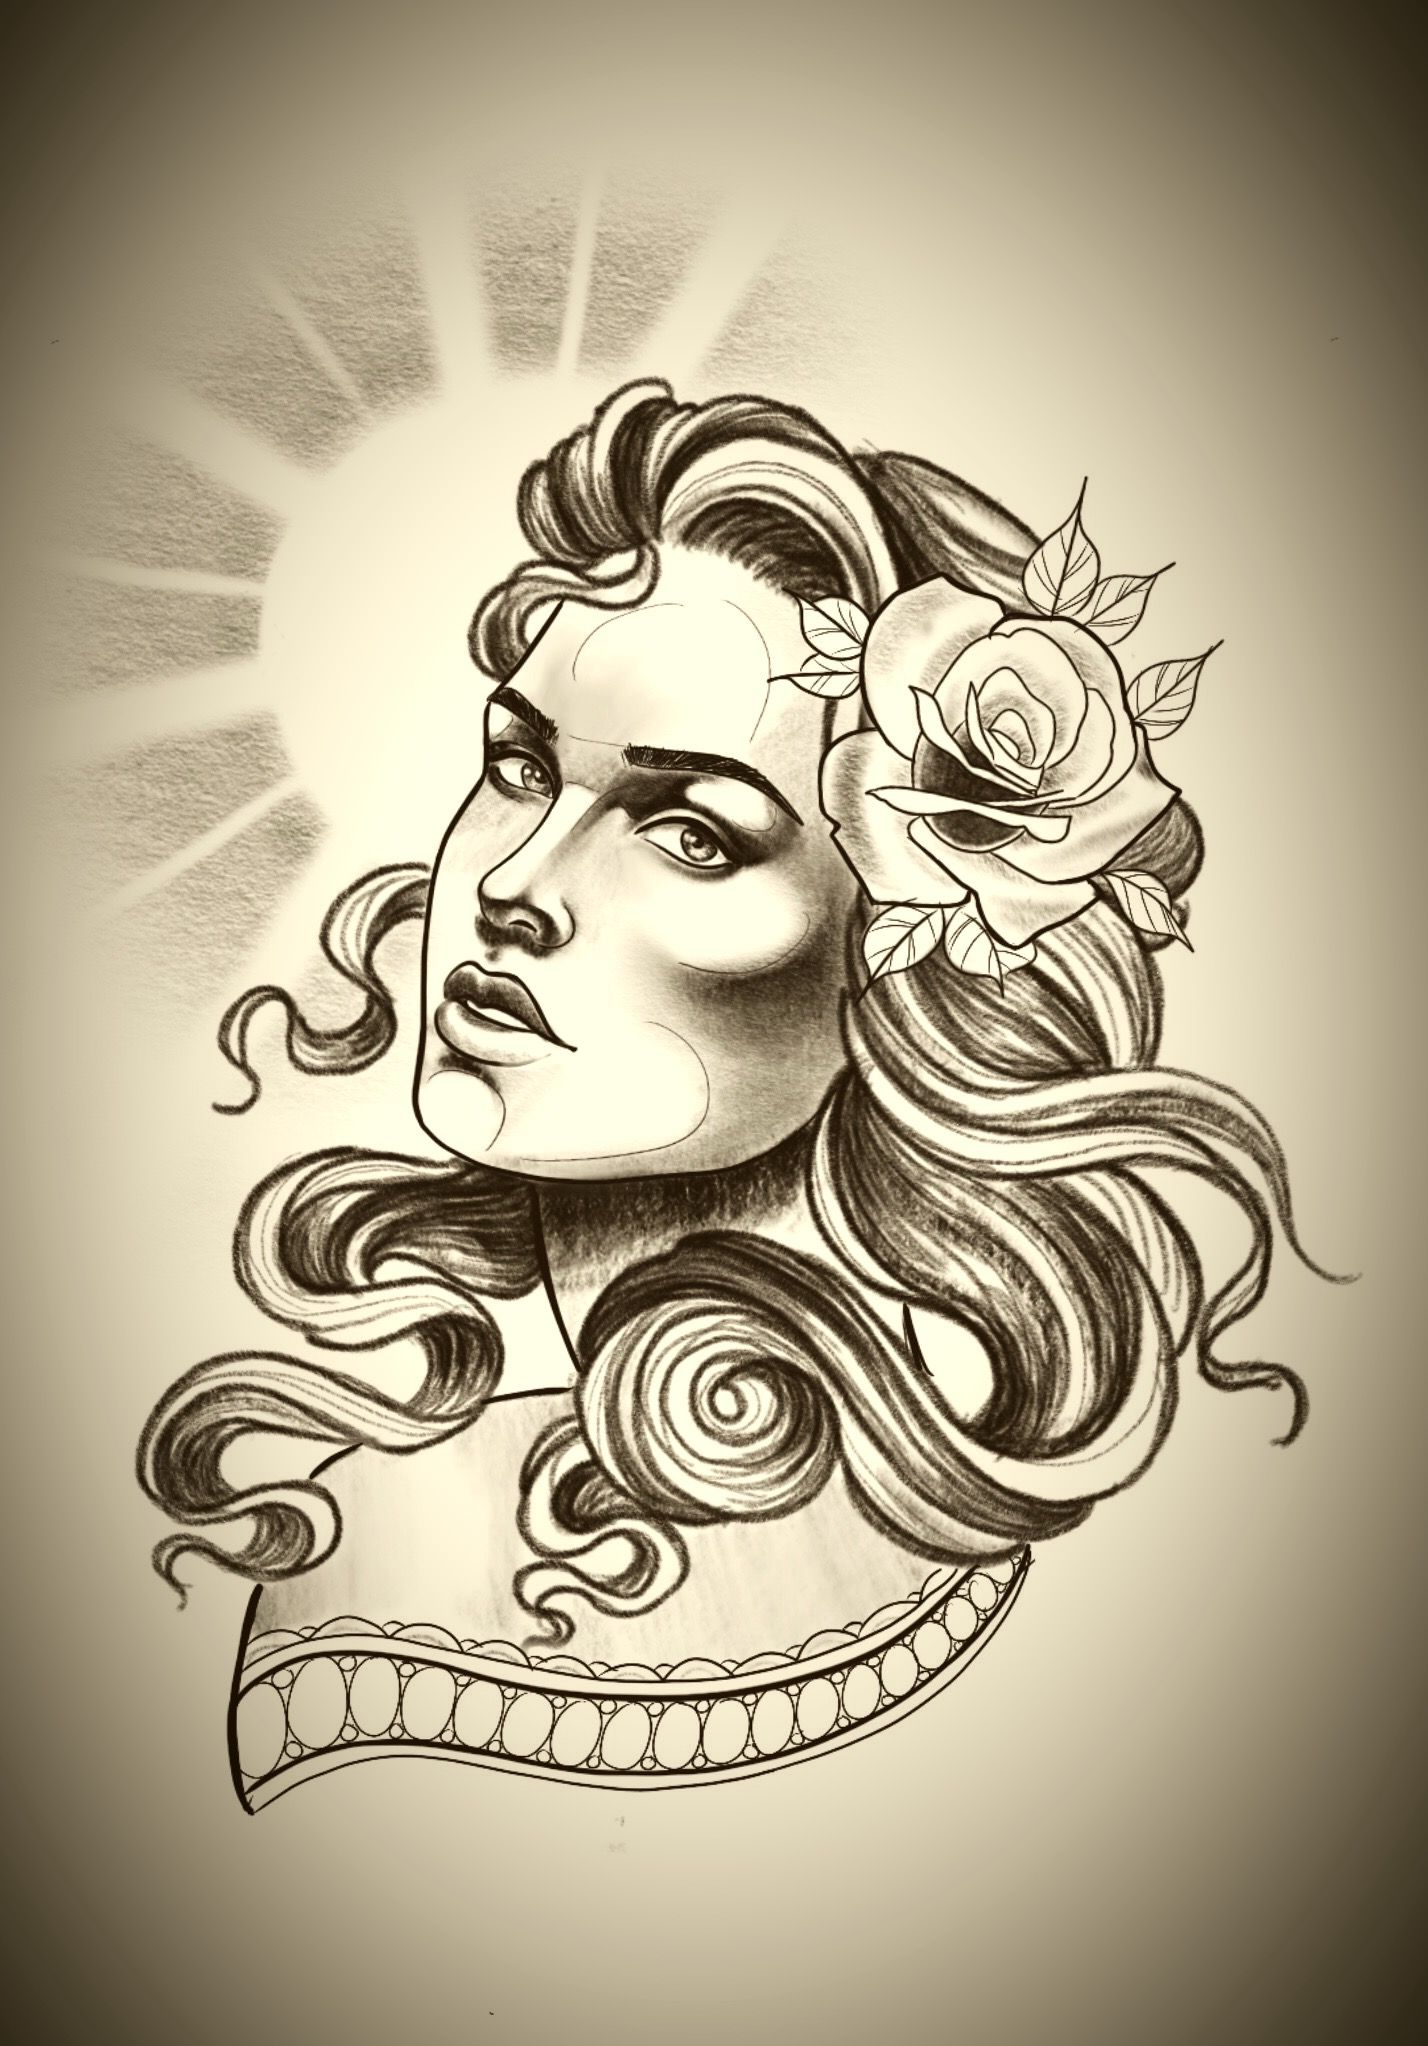 Instagood Inspiration Illustration Instafollow Shautattoo Art